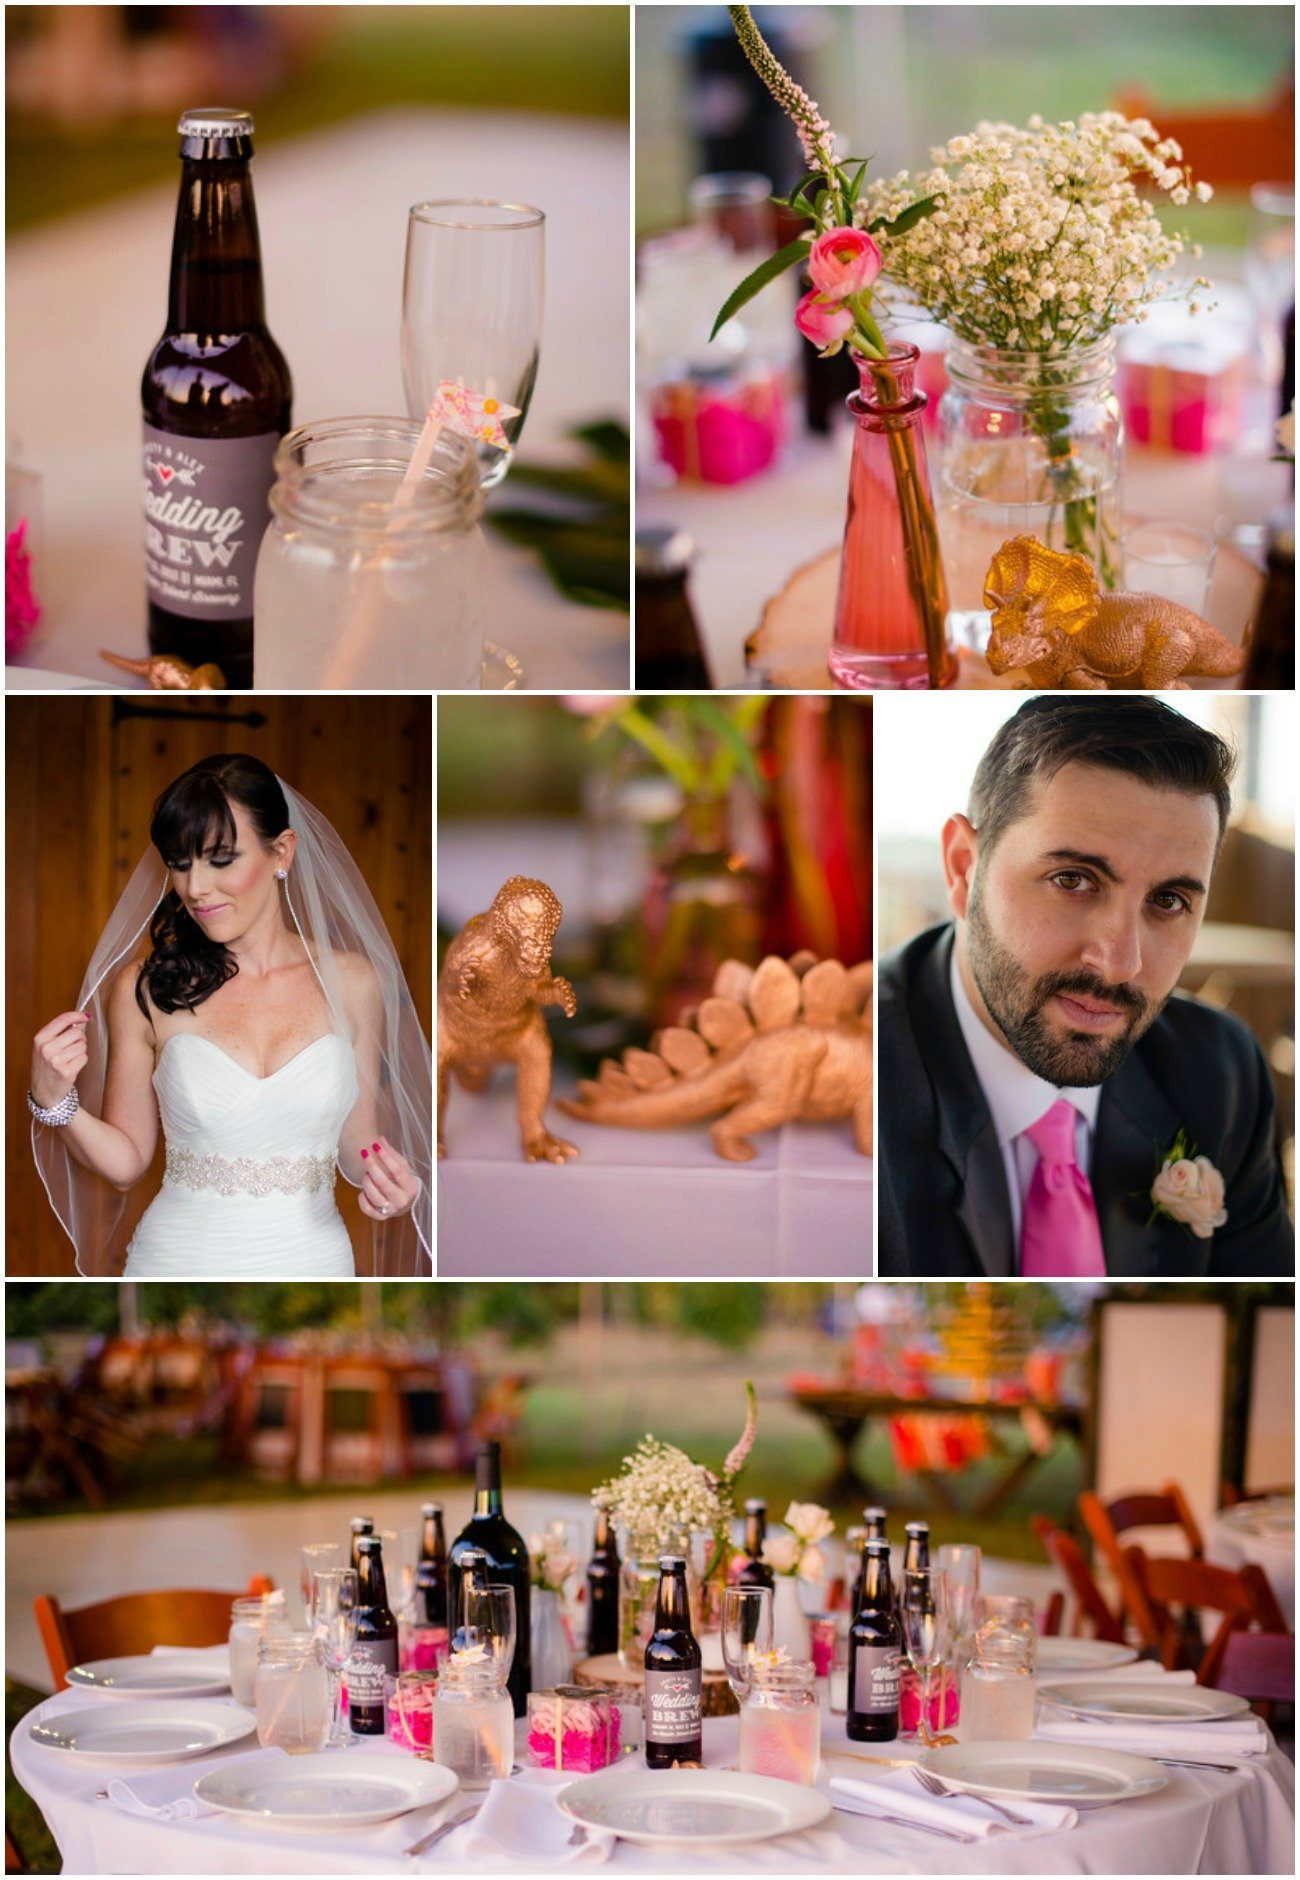 Whimiscal Real Wedding with beer favors